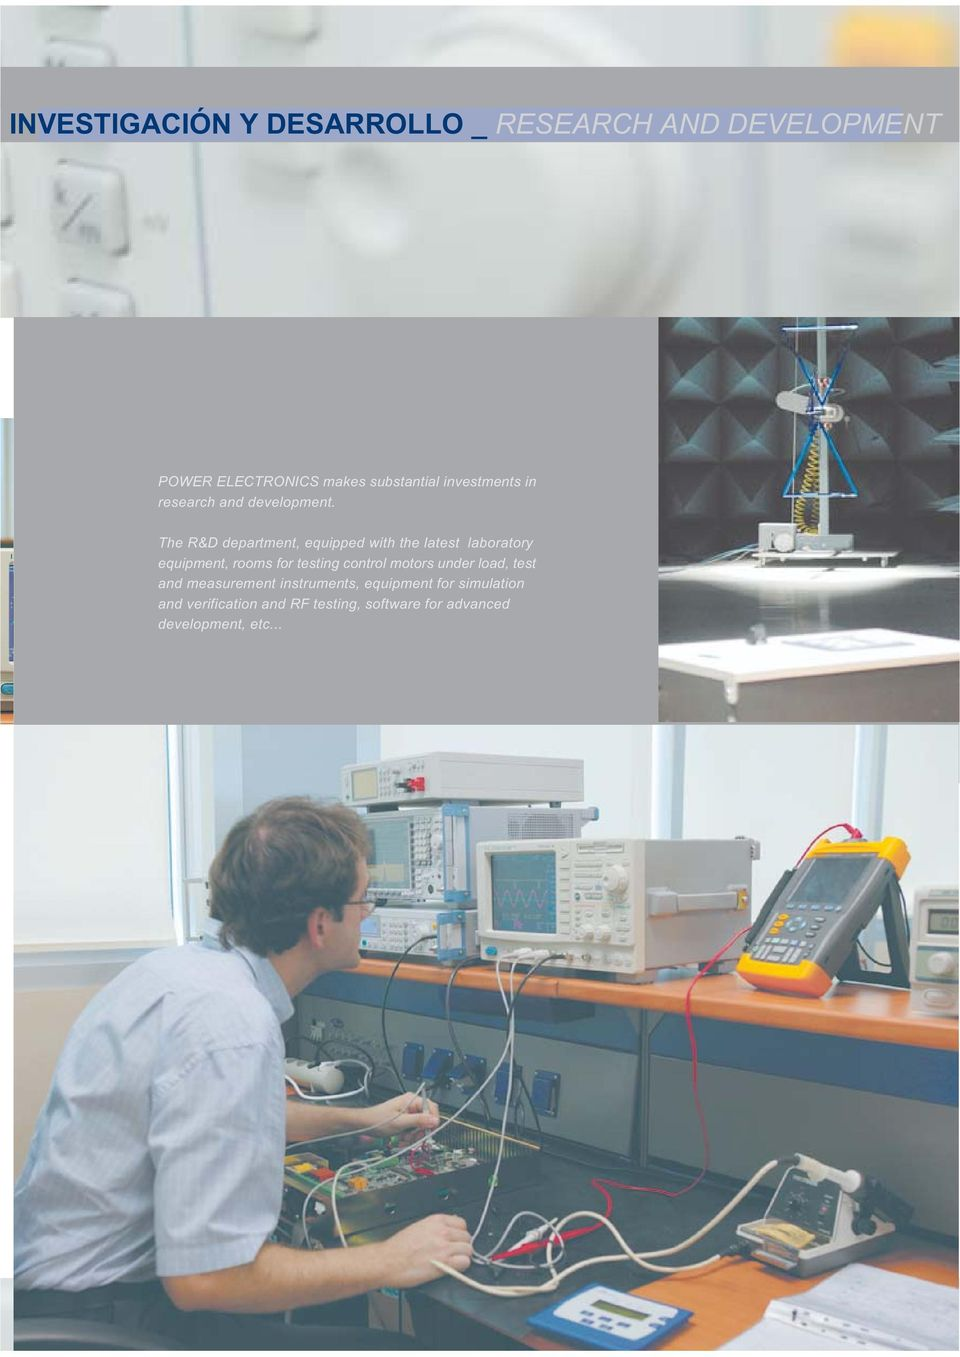 The R&D department, equipped with the latest laboratory equipment, rooms for testing control